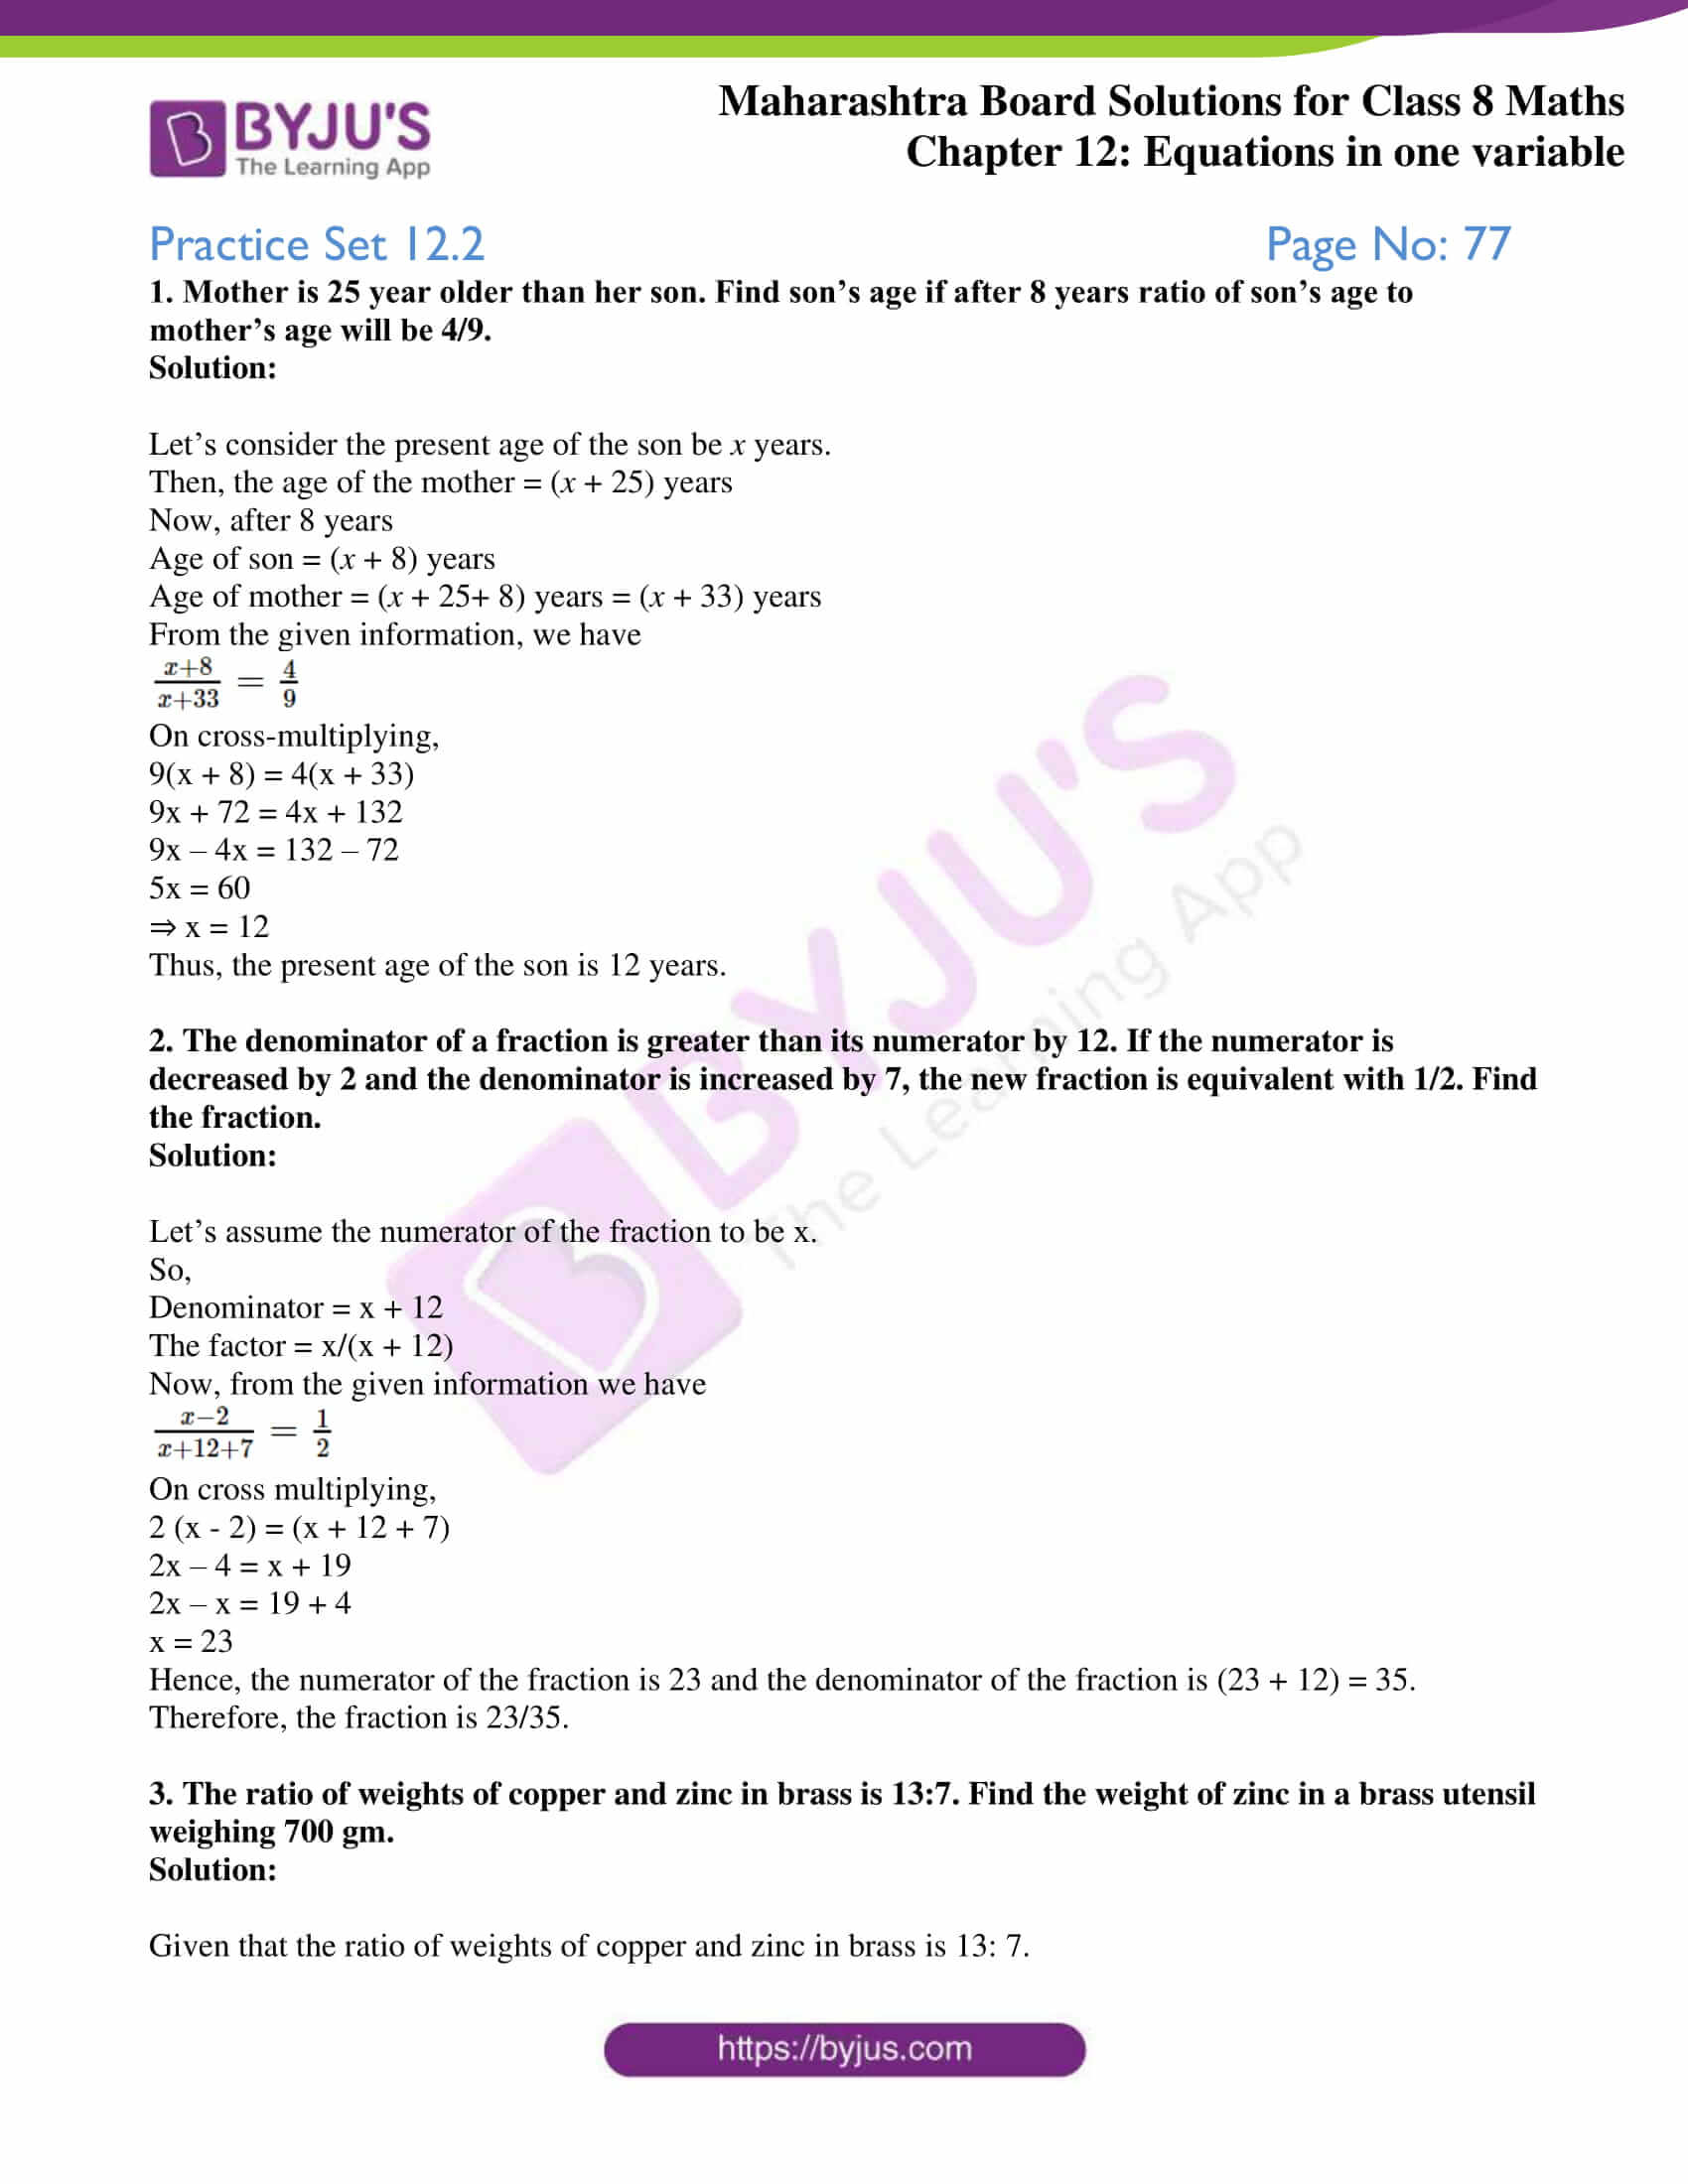 msbshse sol for class 8 maths chapter 12 07